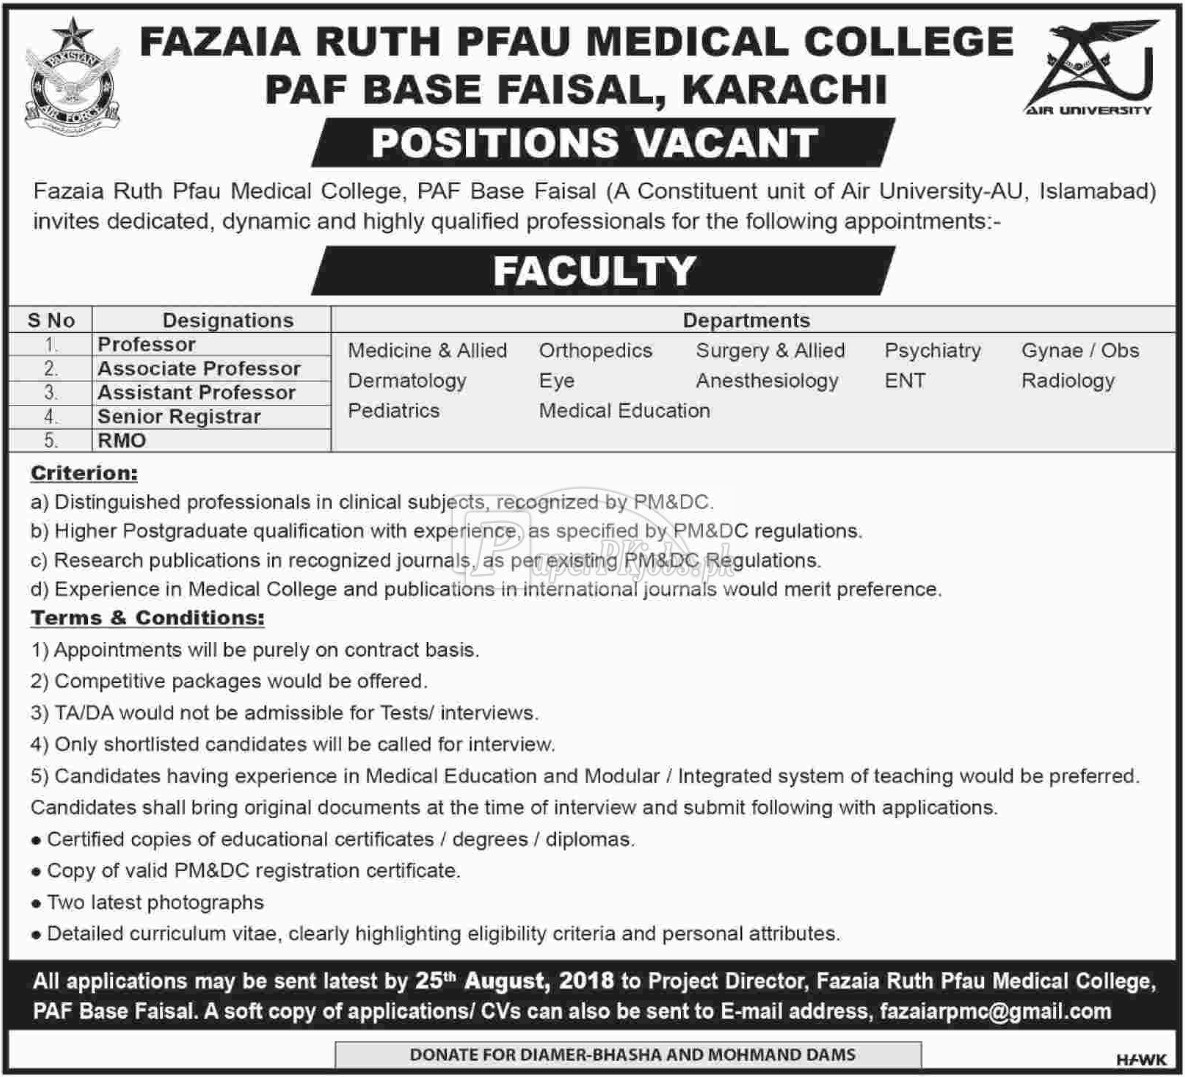 Fazaia Ruth Pfau Medical College PAF Base Faisal Karachi Jobs 2018